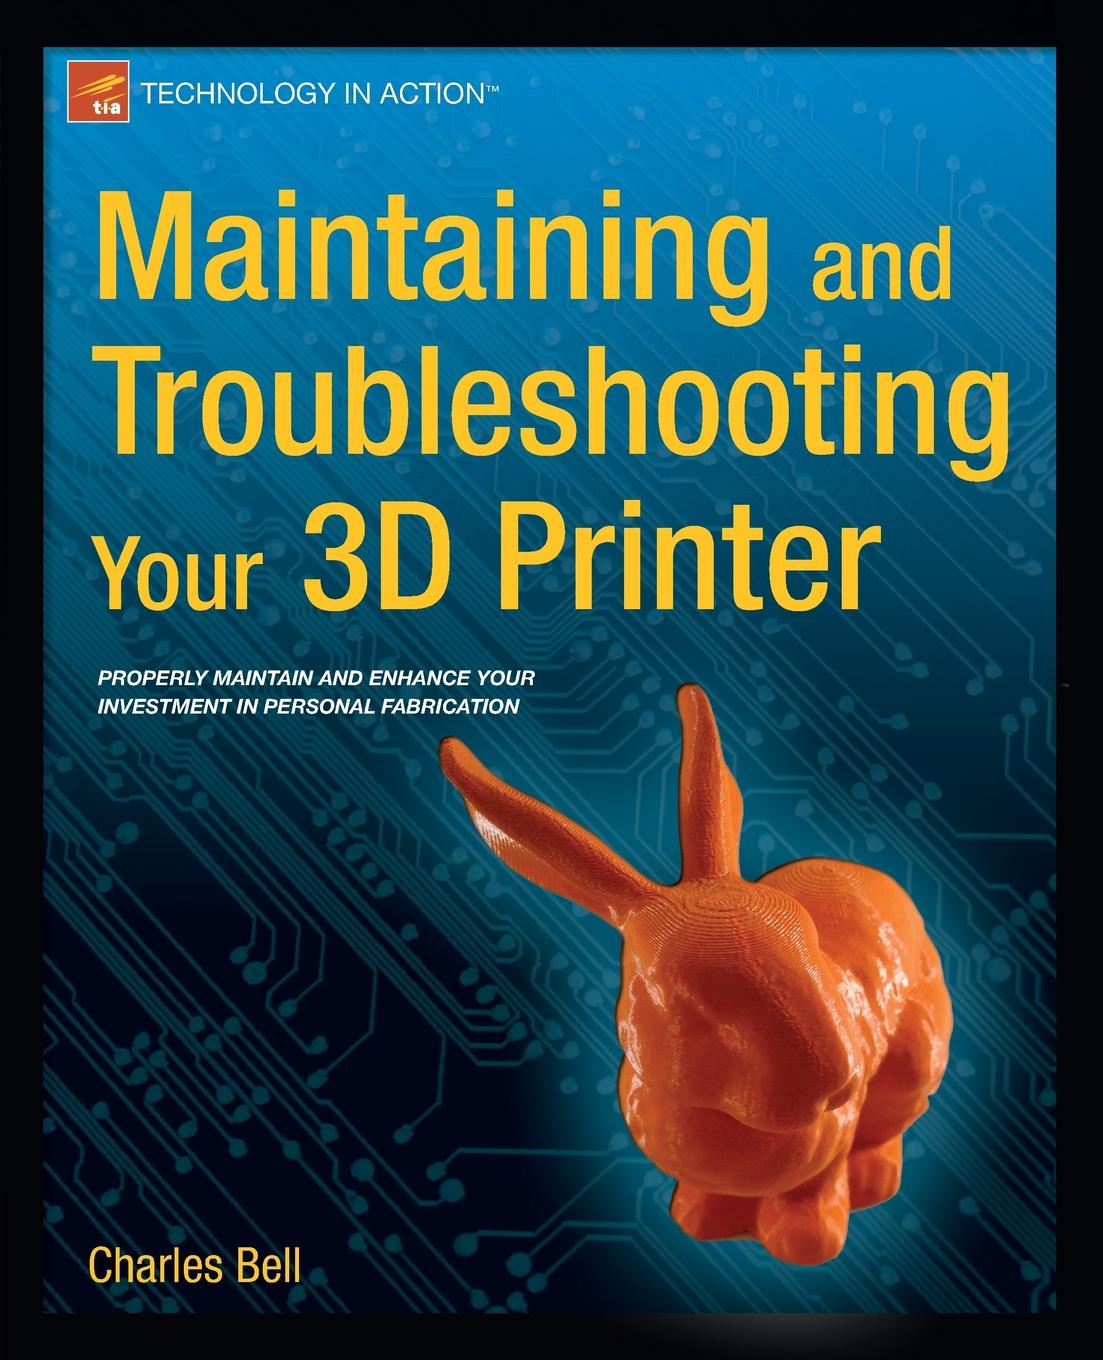 Charles Bell Maintaining and Troubleshooting Your 3D Printer dan gookin troubleshooting and maintaining your pc all in one for dummies